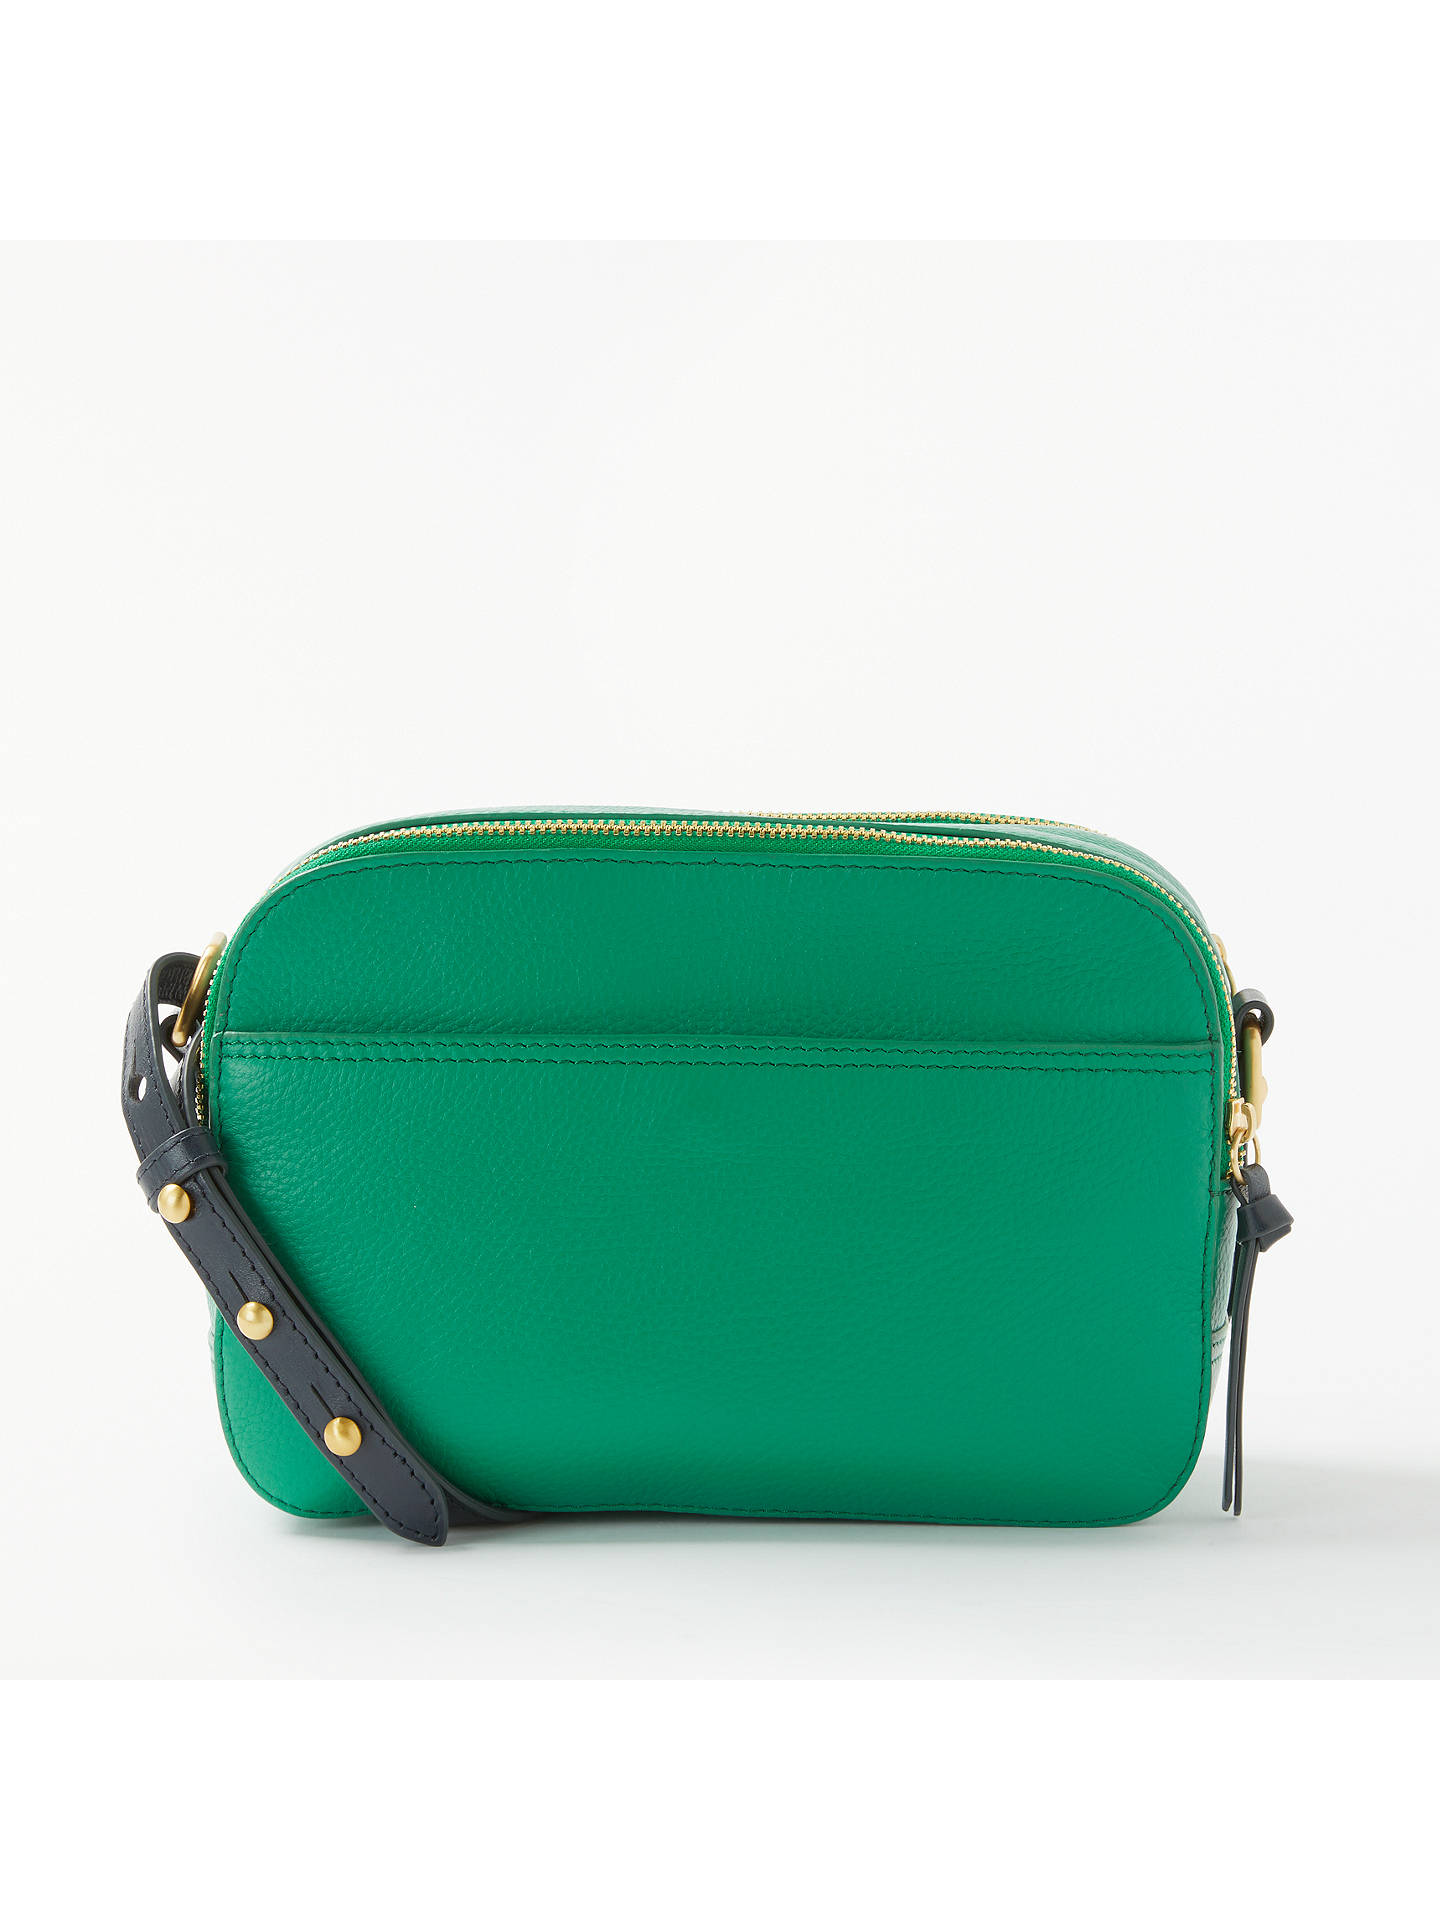 bc7ce3e754f BuyJohn Lewis   Partners Rhea Leather Camera Bag, Green Navy Online at  johnlewis.